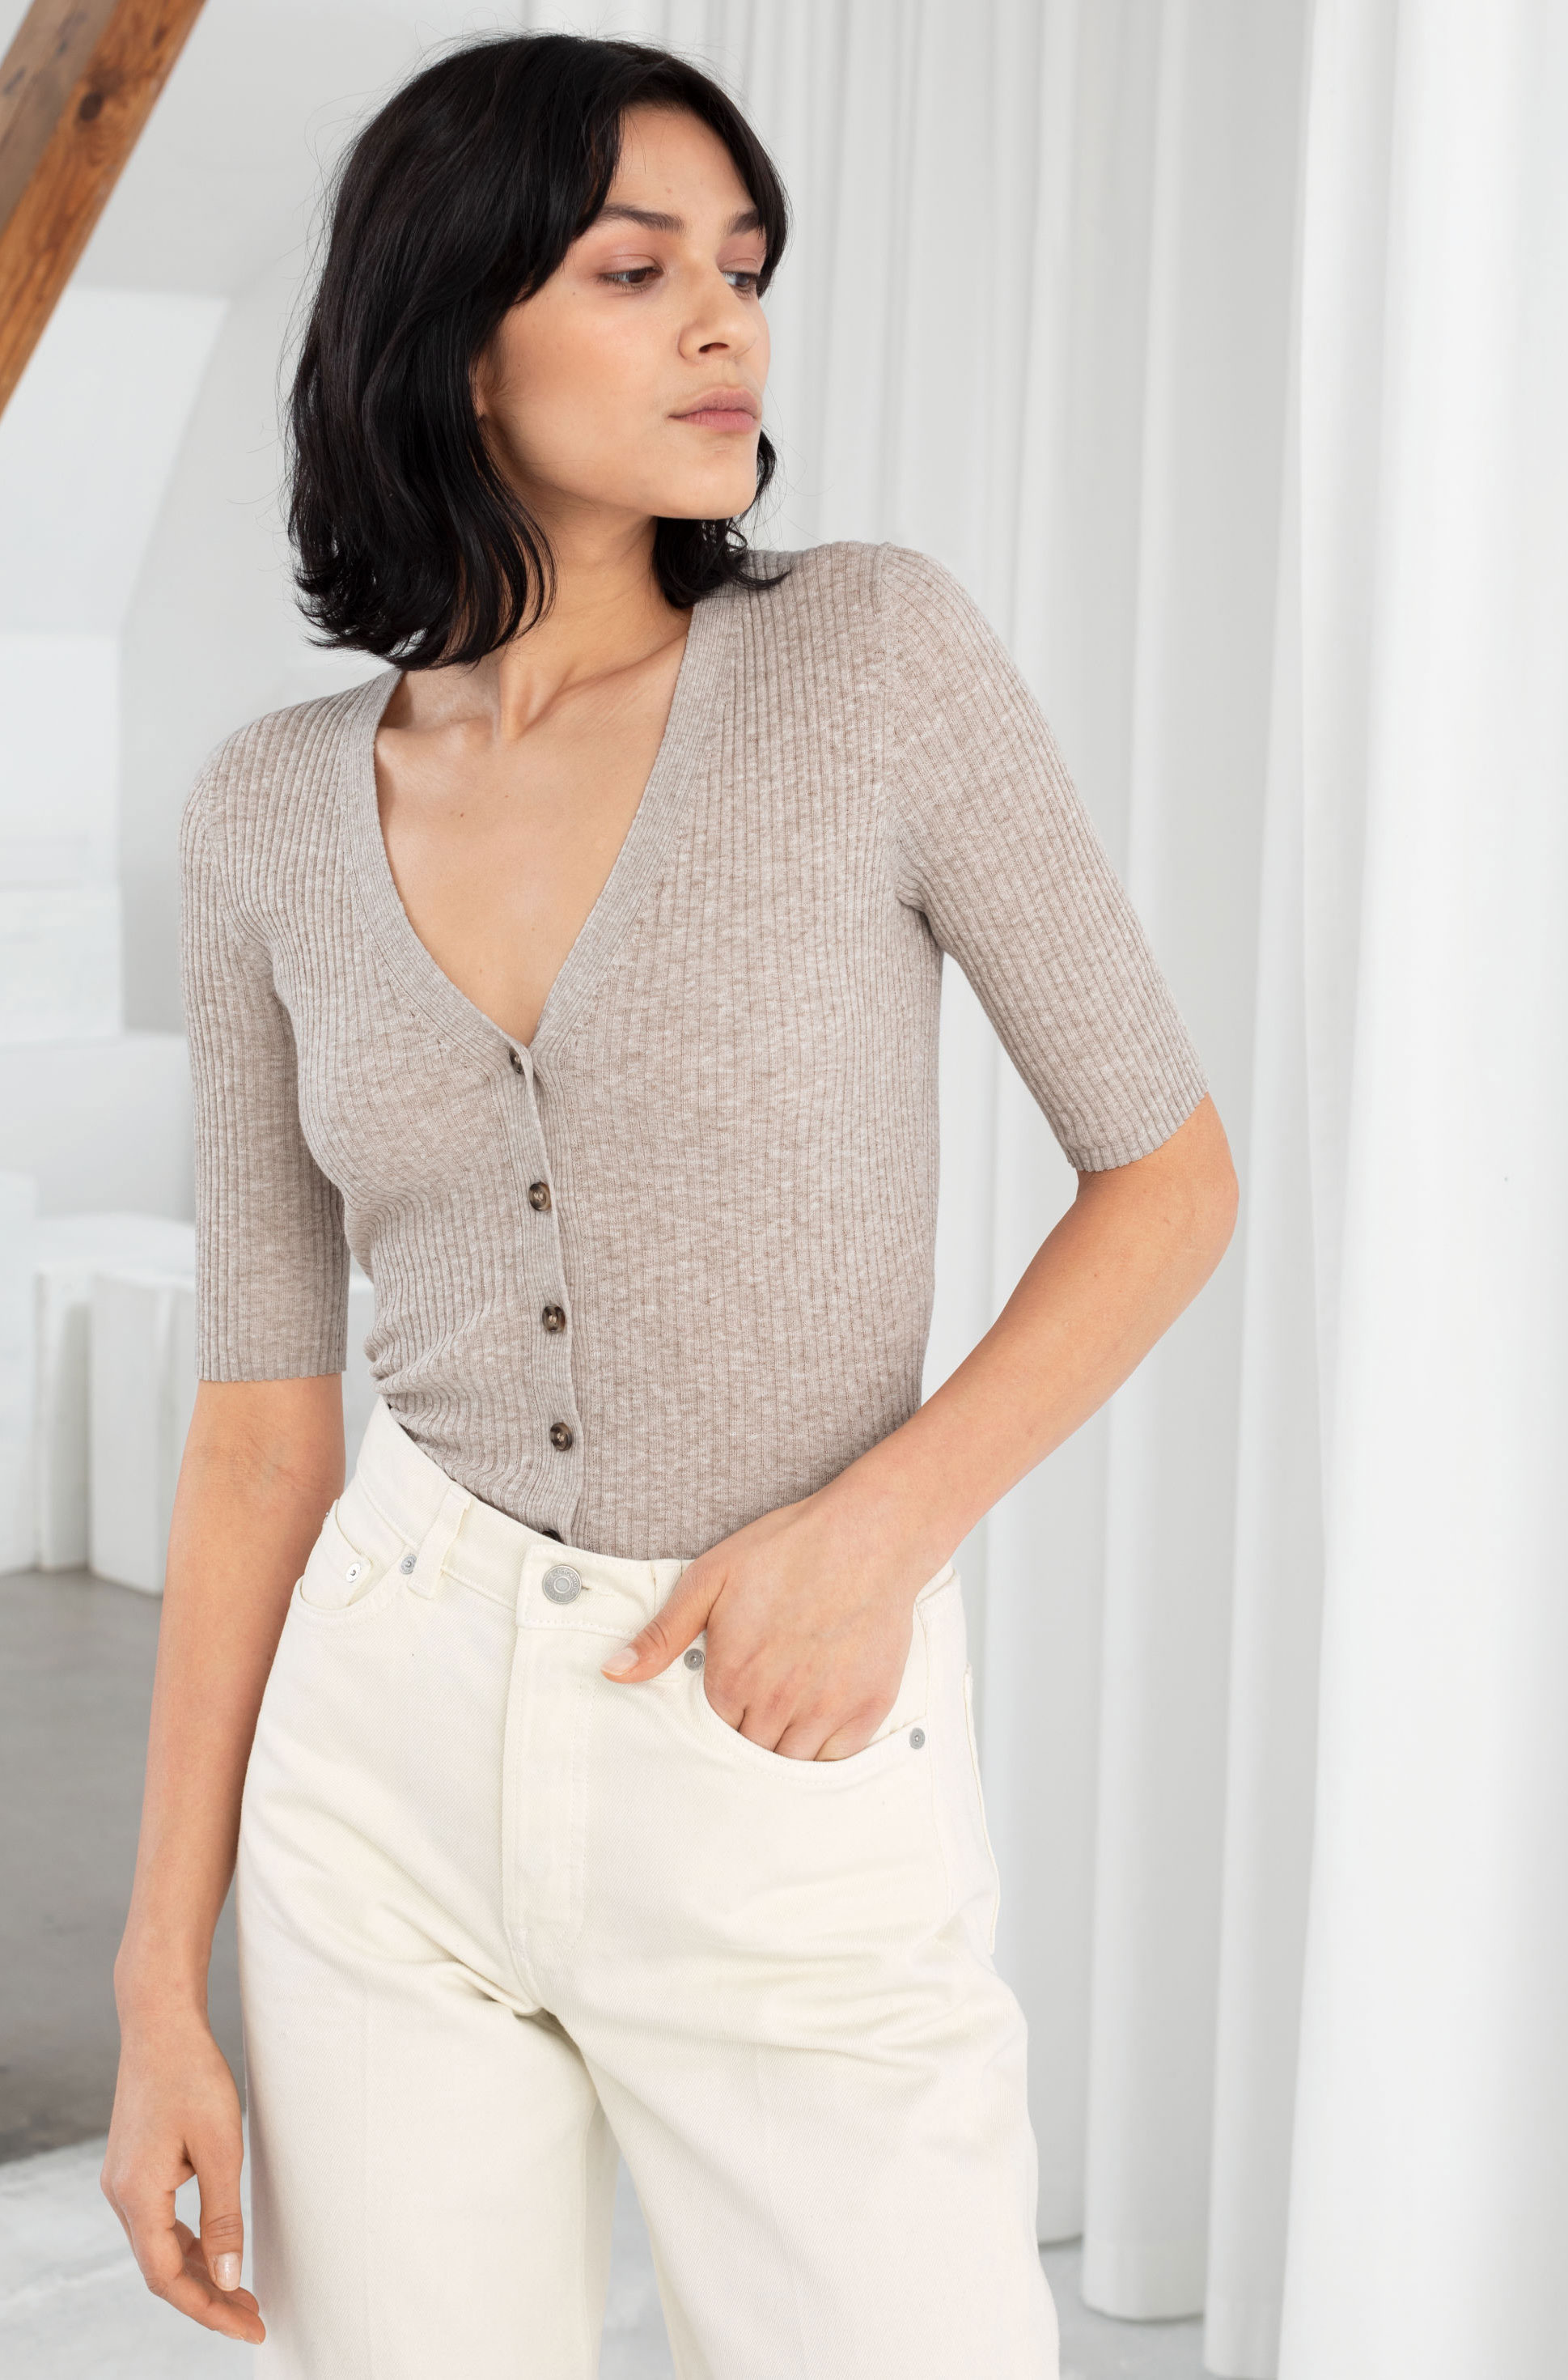 & Other Stories Neutral Cardigan  $69